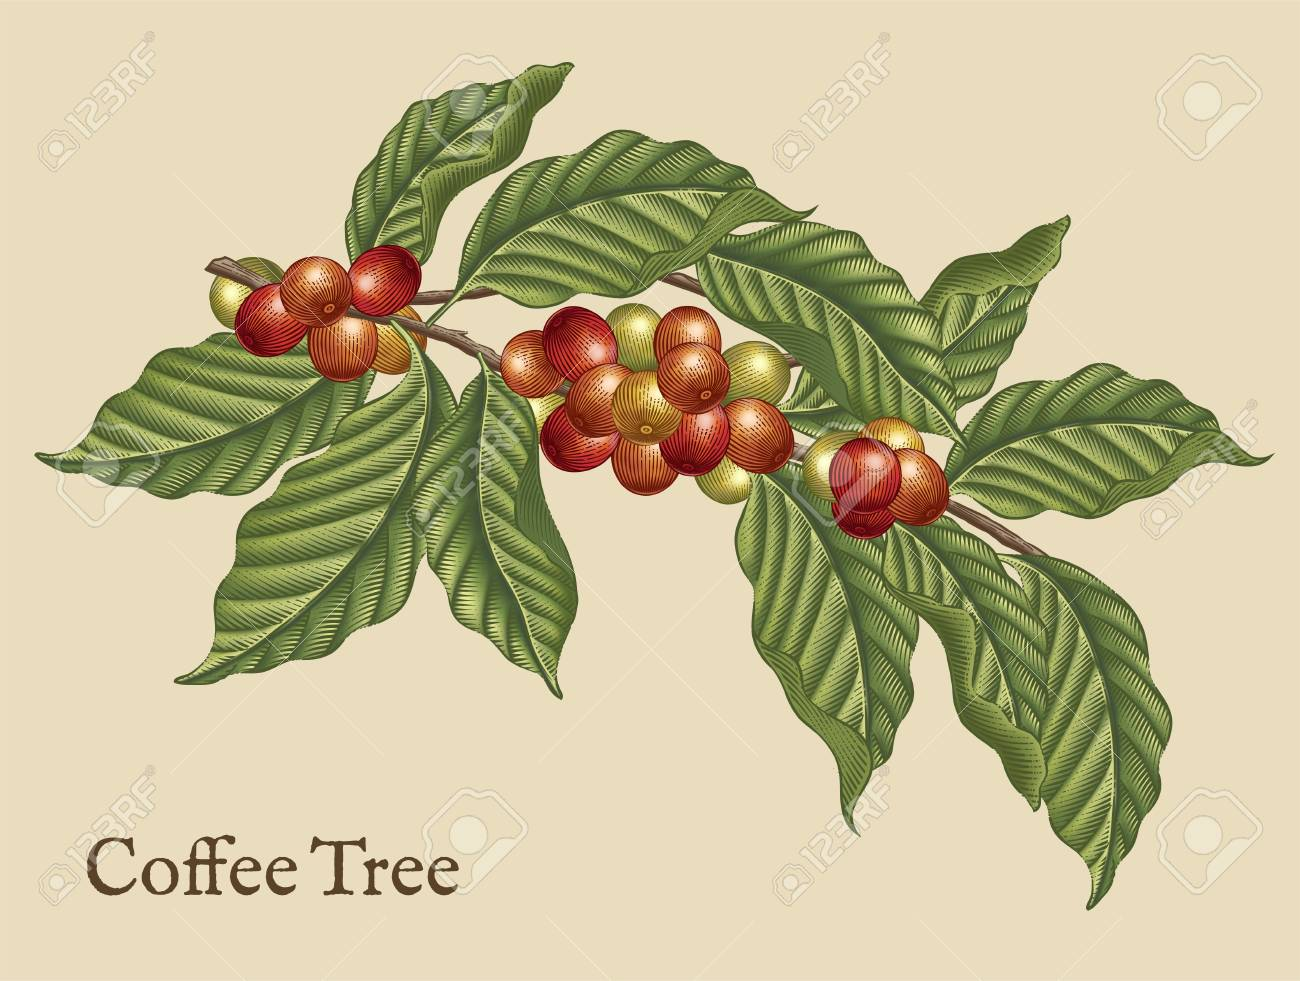 Coffee tree elements, retro coffee plants in etching shading style with color - 95737713